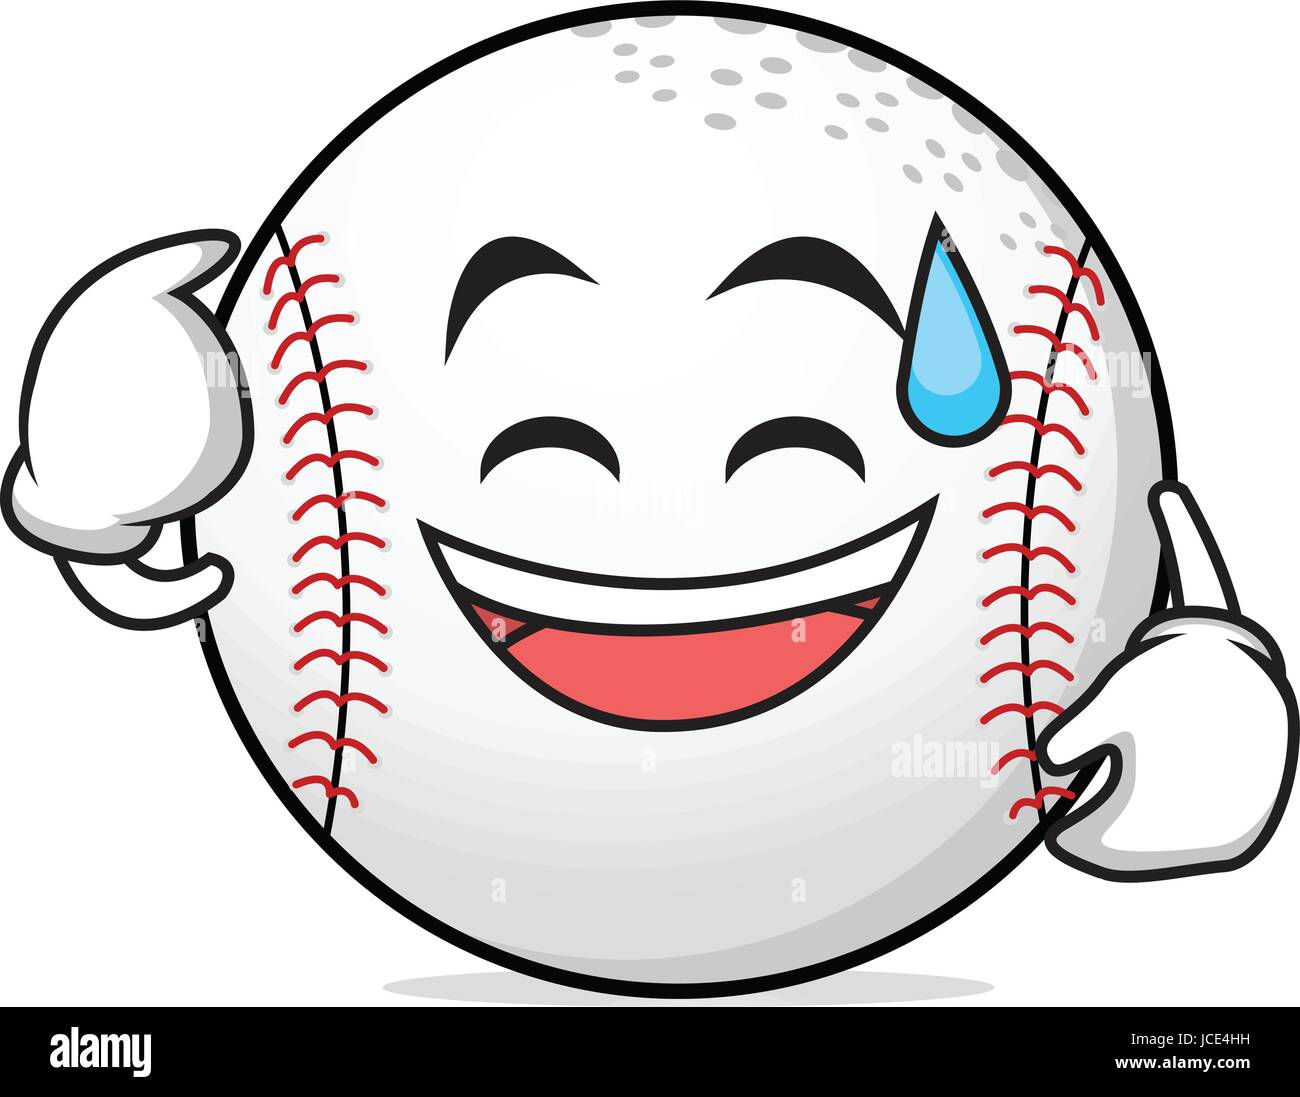 Sweat smile face baseball character - Stock Vector